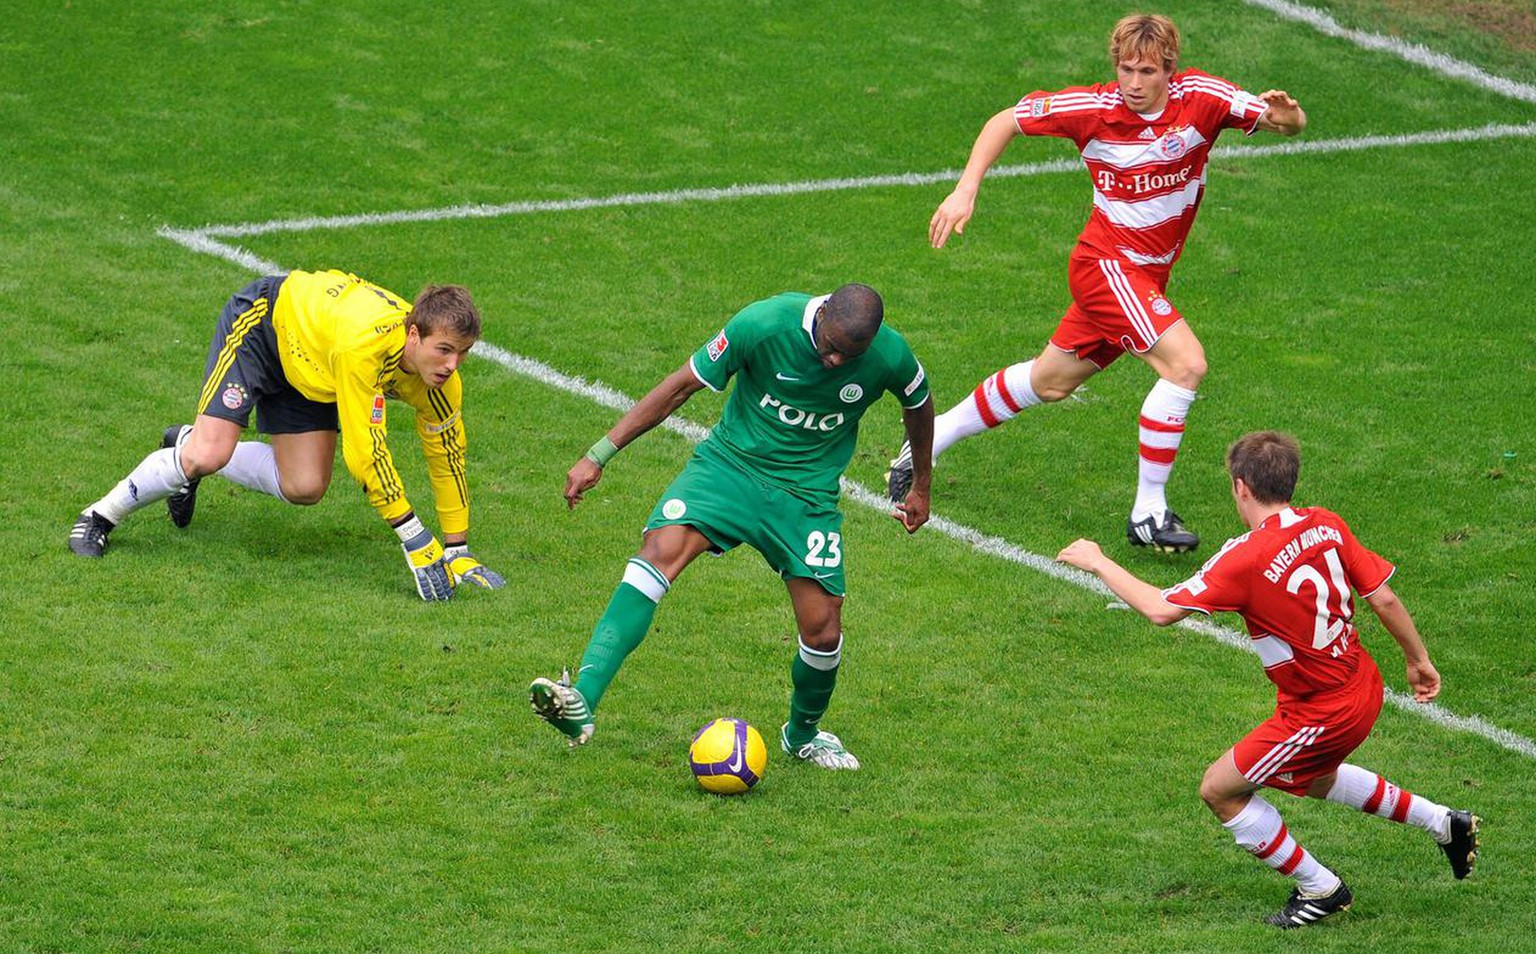 Wolfsburg's Grafite, second from left, scores his side's 5th goal, against Munich's goalkeeper Michael Rensing, Munich's Andreas Ottl and Munich's Philipp Lahm, from left to right, during the German first division Bundesliga soccer match between VfL Wolfsburg and Bayern Munich in Wolfsburg, Germany, on Saturday, April 4, 2009. (AP Photo/Gero Breloer) **EDS Note German Spelling of Munich is Muenchen  ** NO MOBILE USE UNTIL 2 HOURS AFTER THE MATCH, WEBSITE USERS ARE OBLIGED TO COMPLY WITH DFL-RESTRICTIONS, SEE INSTRUCTIONS FOR DETAILS **